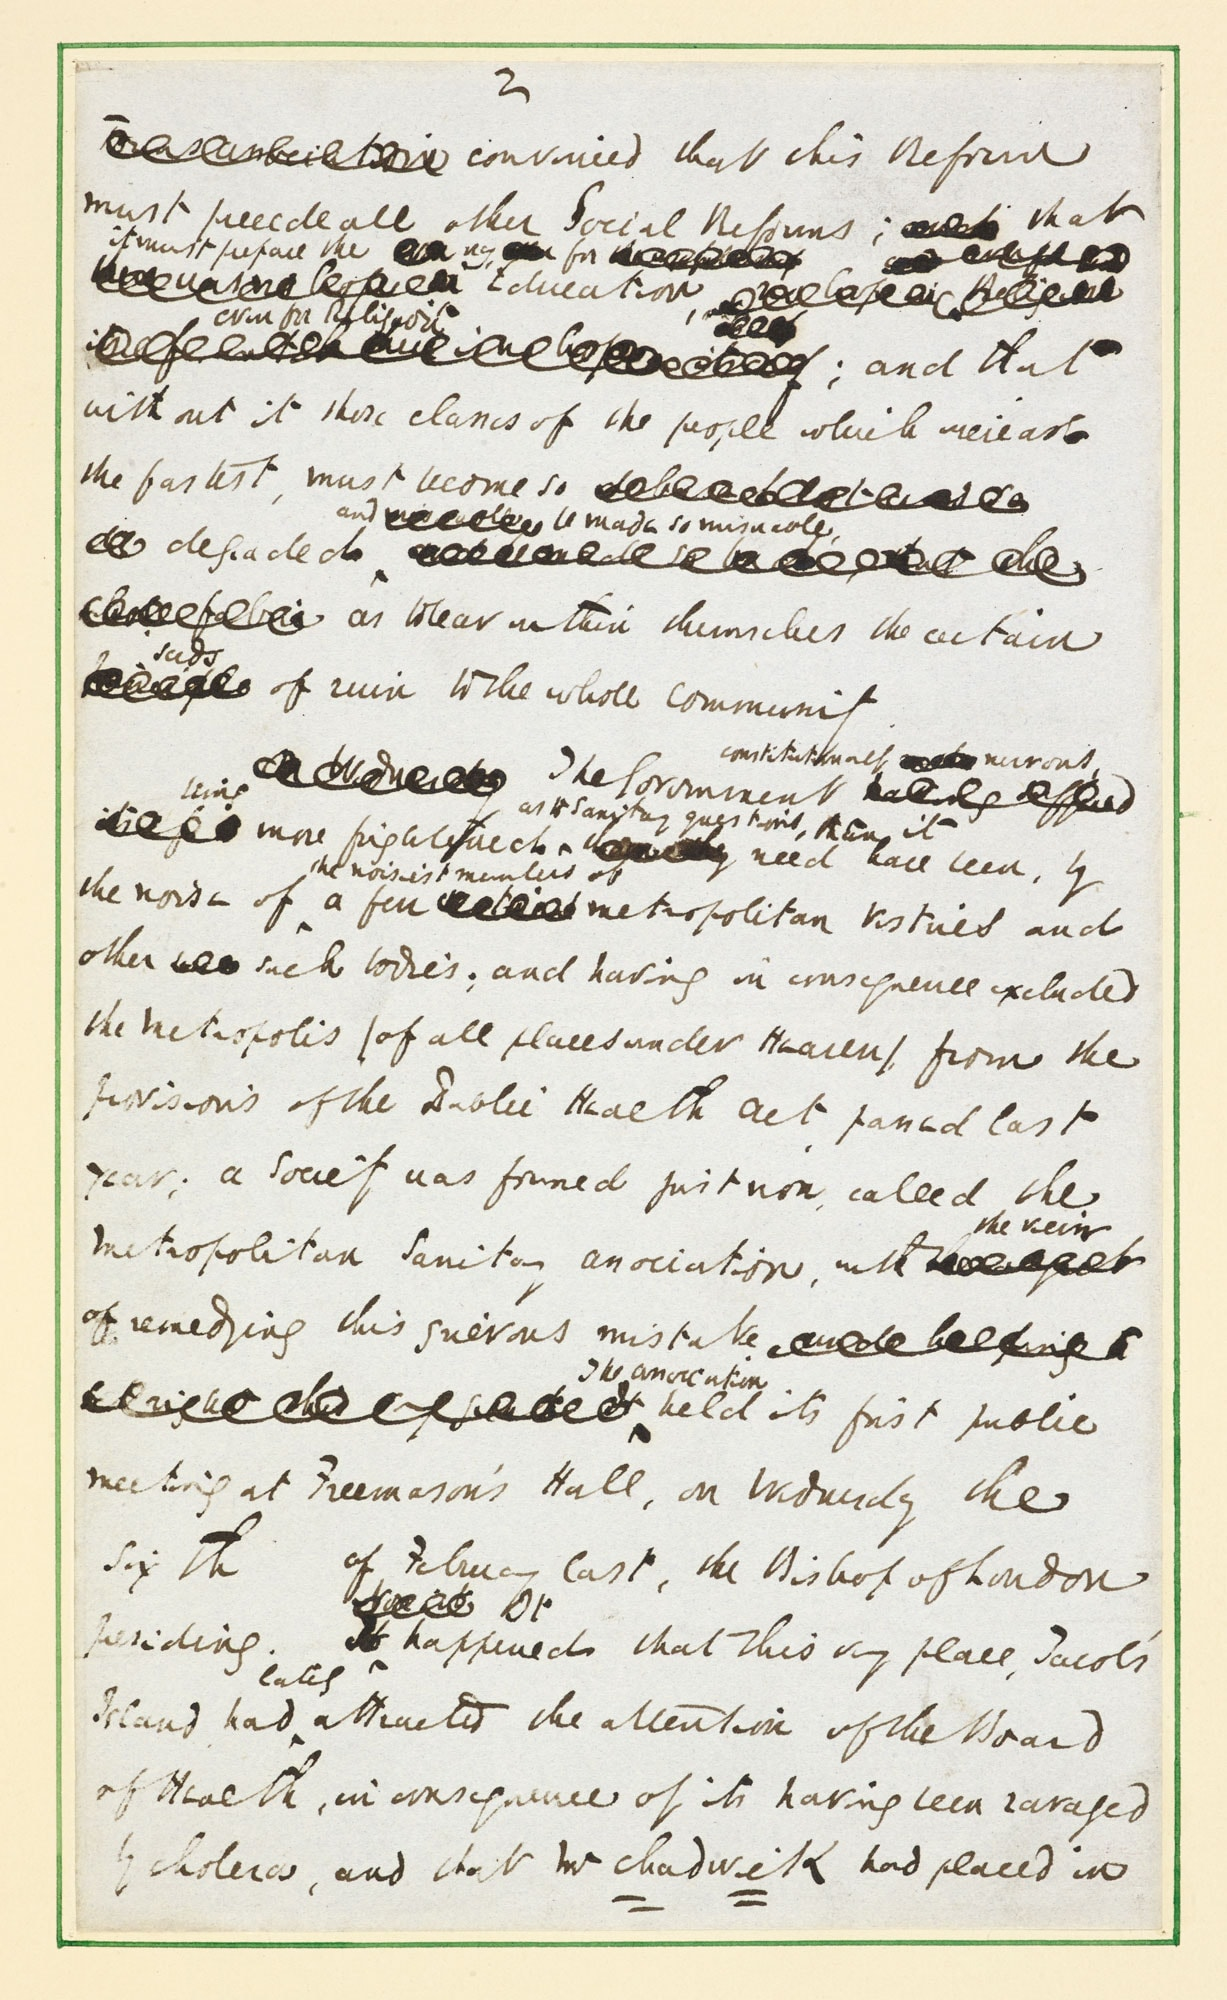 """Preface to Oliver Twist Cheap Edition by Charles Dickens, 1850. Featured in Sol Stein's """"Stein on Writing"""" in the Examined Life Library."""